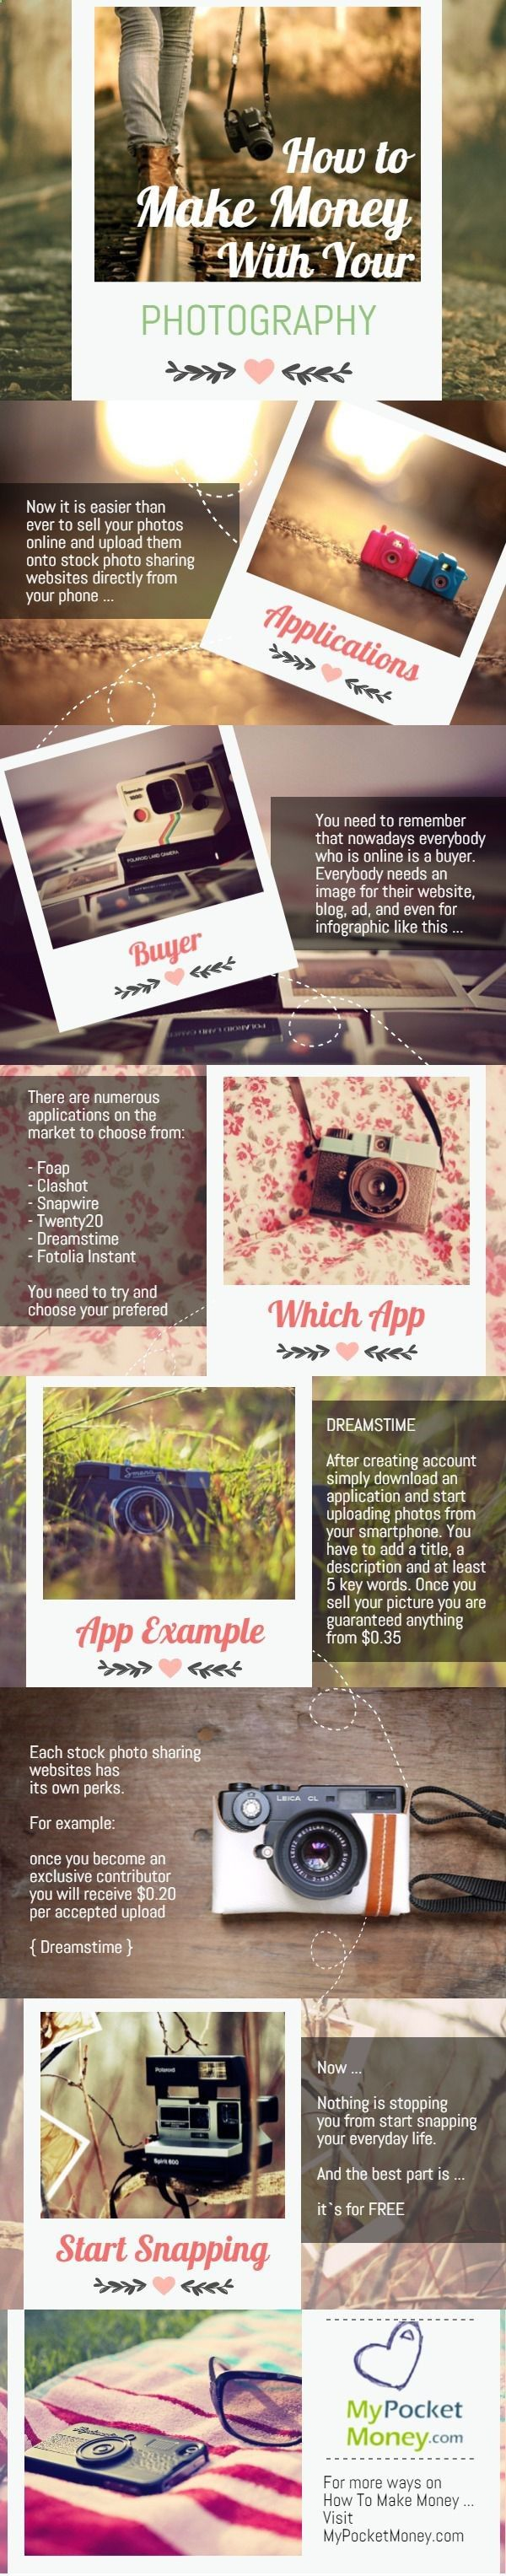 Photography Jobs Online - If you would like to make some quick money on the side with photos you already have in your smartphone then read on :) Visit www.mypocketmoney... for more ideas how to earn money online and get a free lesson. #pocketmoney #earnmoneyonline #mypocketmoney Money Making Ideas, Making Money, #MakingMoney - Photography Jobs Online | Get Paid To Take Photos!